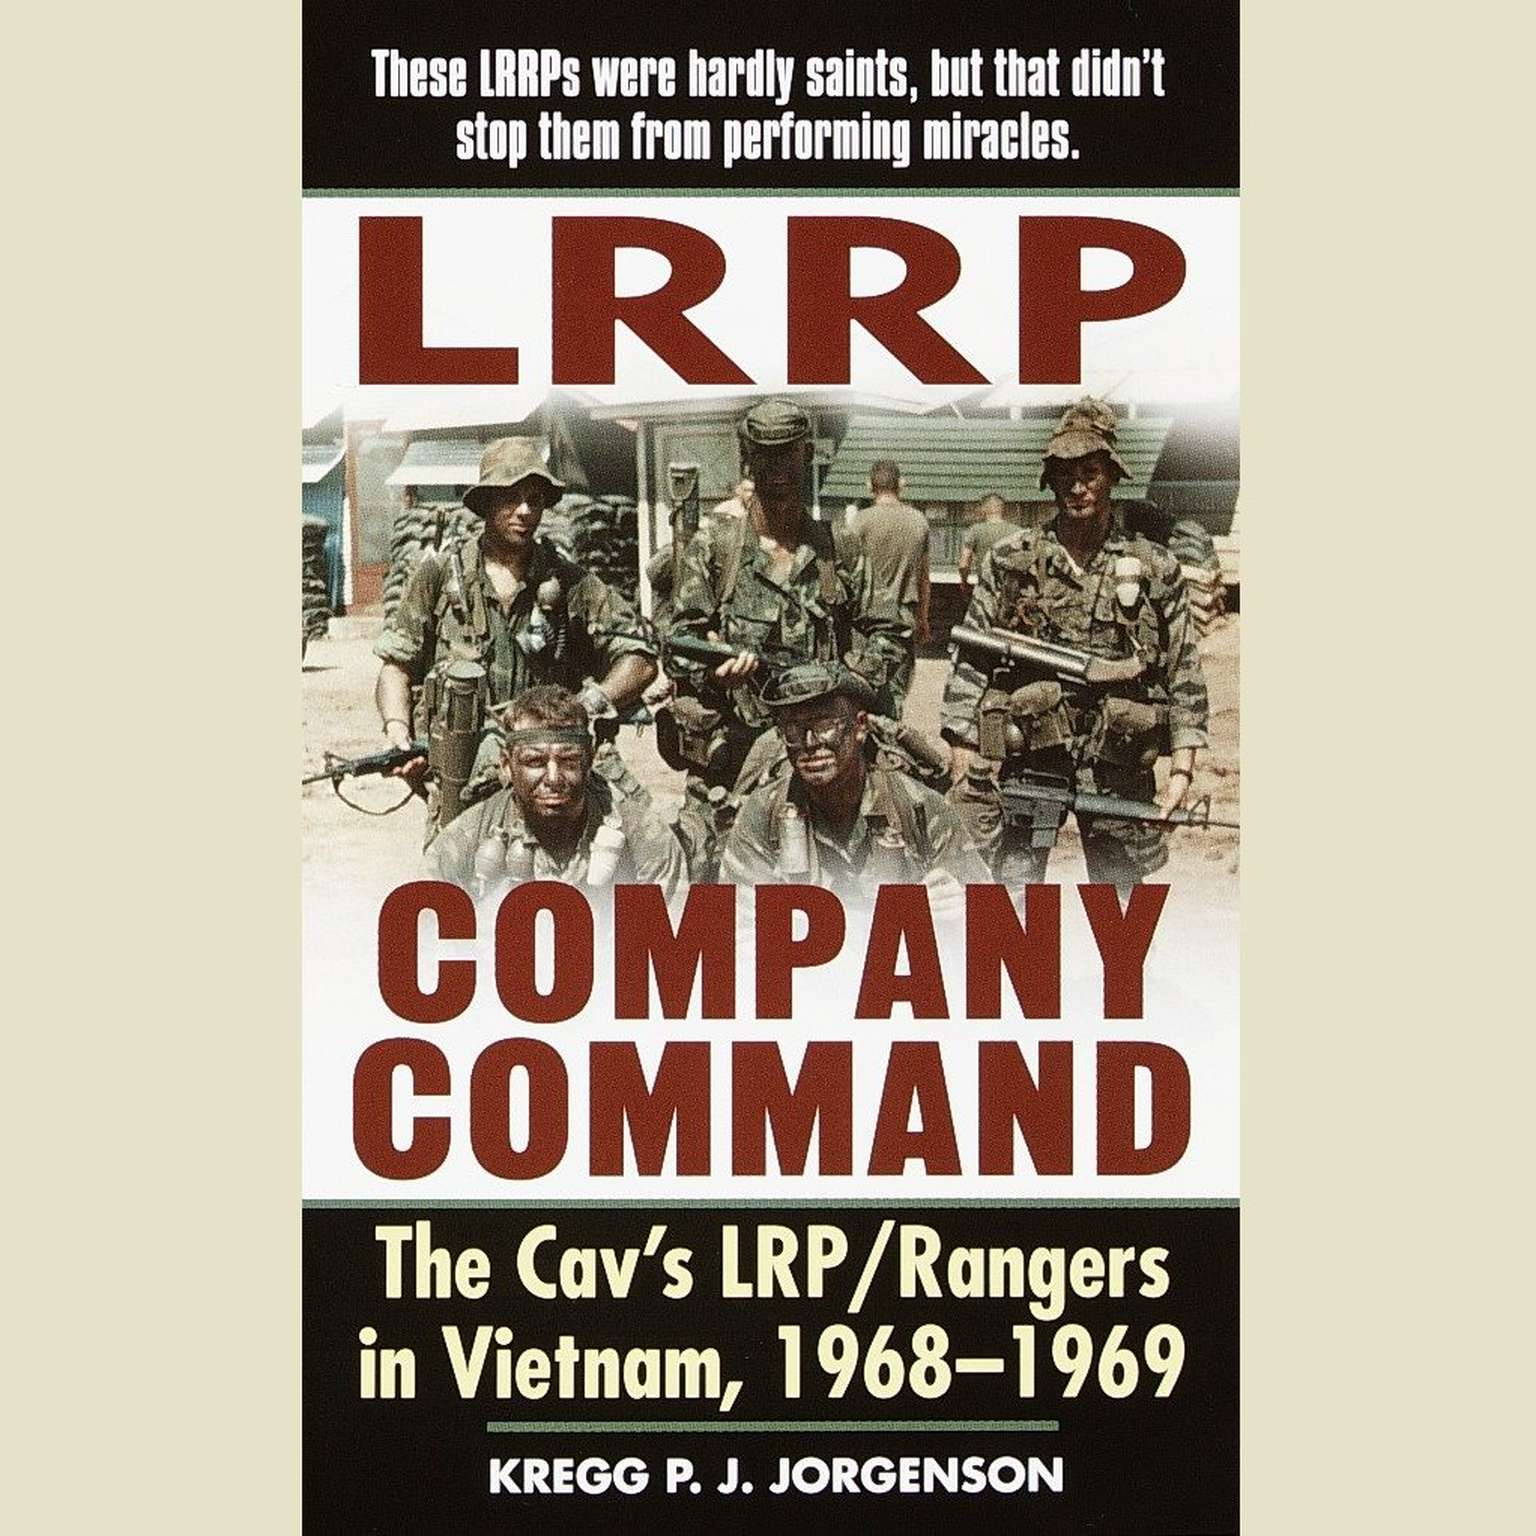 Printable LRRP Company Command: The Cav's LRP / Rangers in Vietnam, 1968 - 1969 Audiobook Cover Art